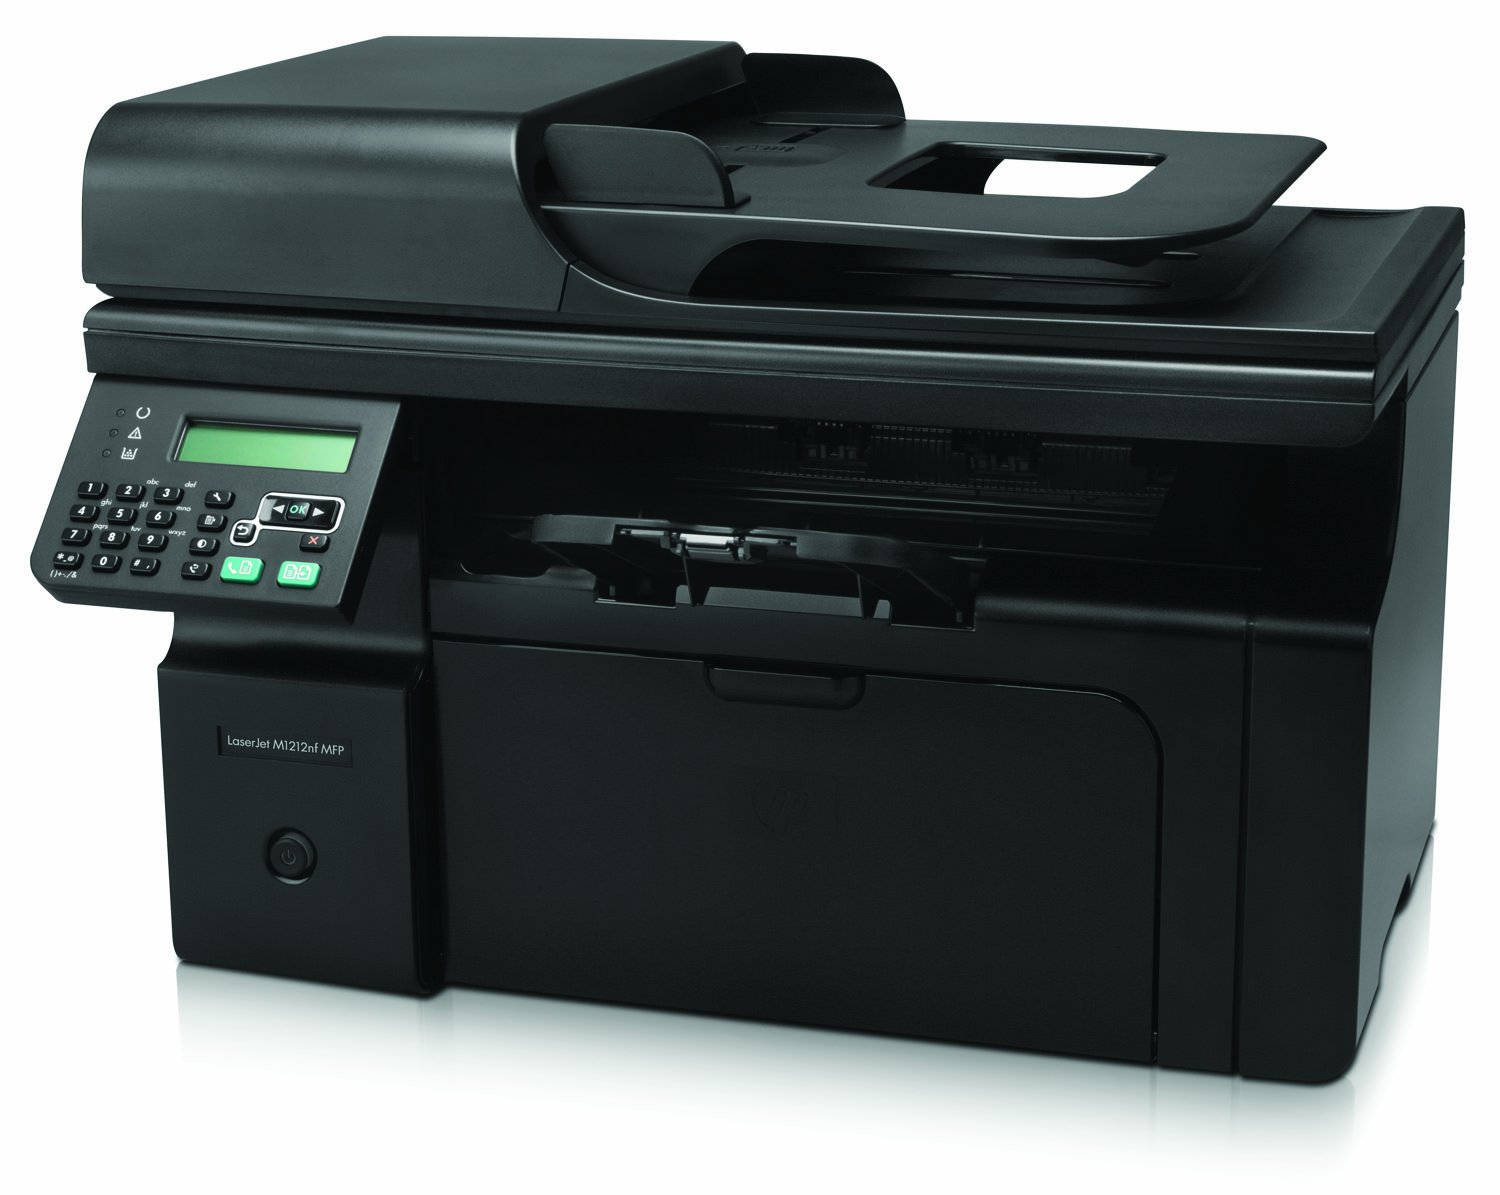 HP LASERJET M1212 WINDOWS 8.1 DRIVER DOWNLOAD